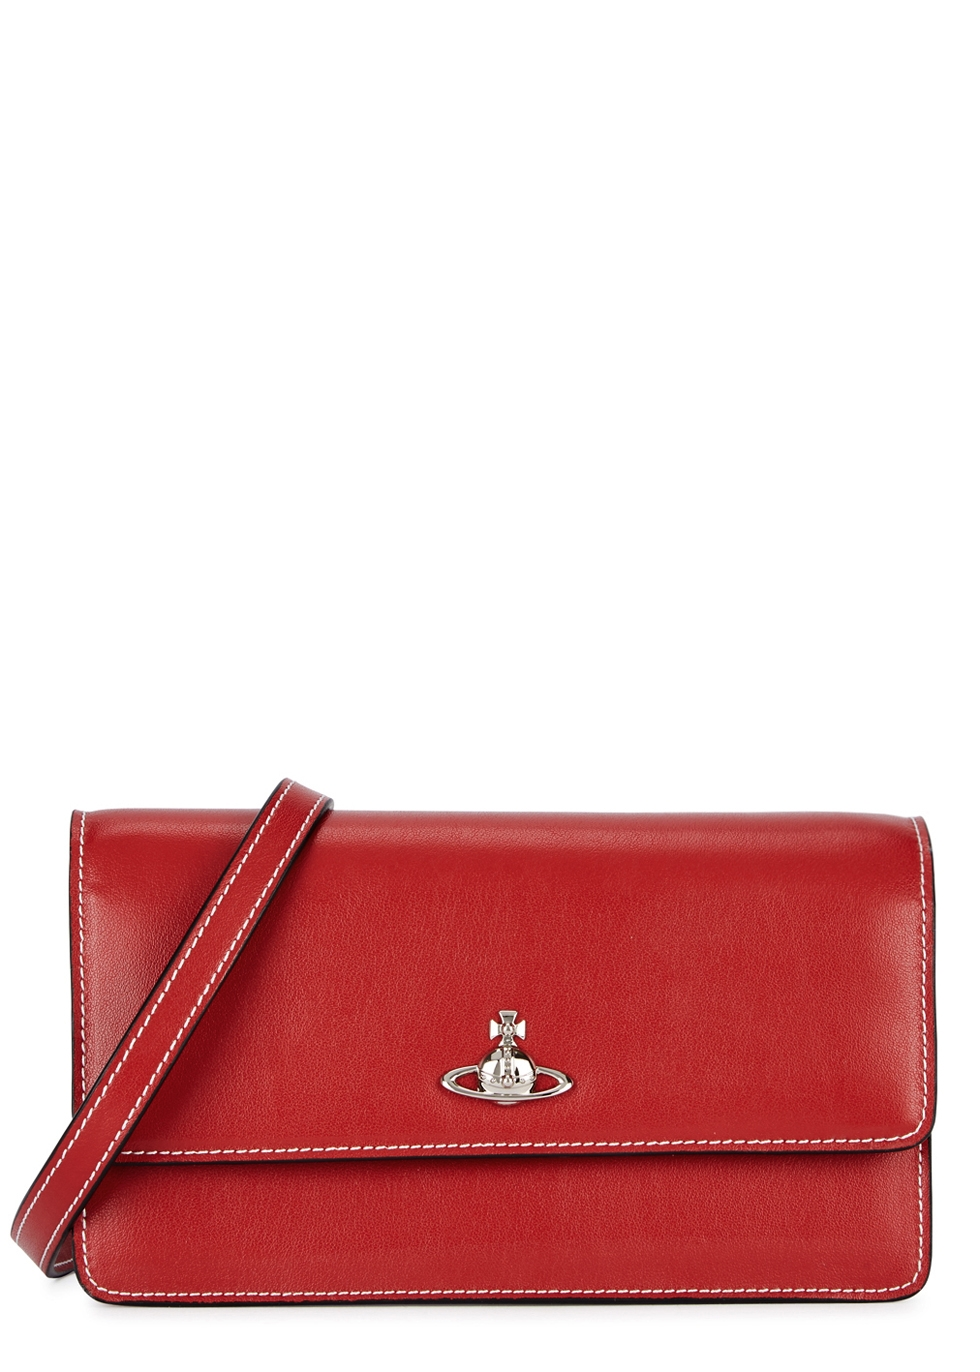 VIVIENNE WESTWOOD MATILDA RED LEATHER CLUTCH